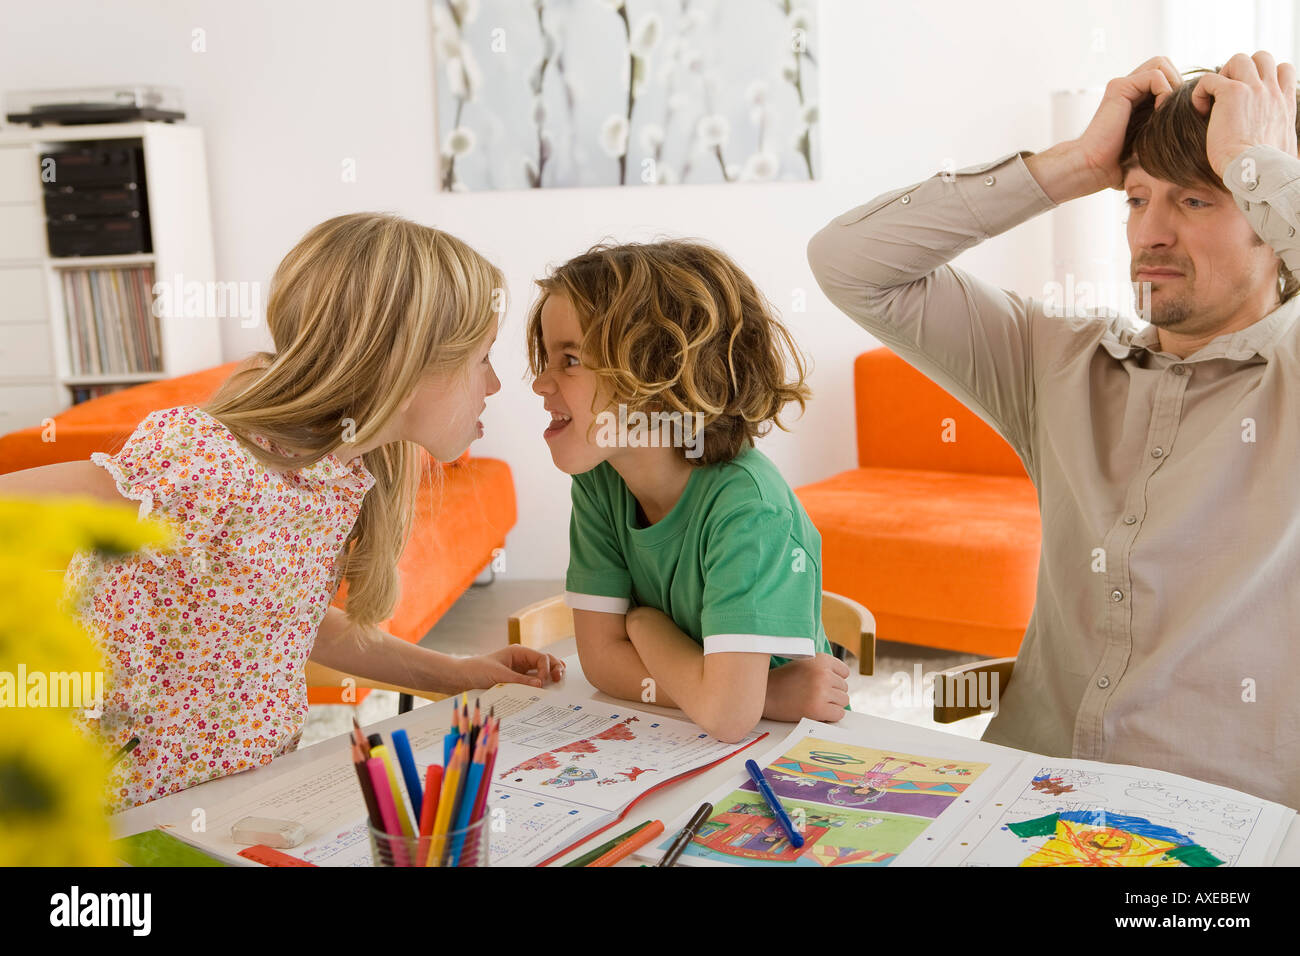 Boy (6-7) and girl (8-9) angry with each other - Stock Image